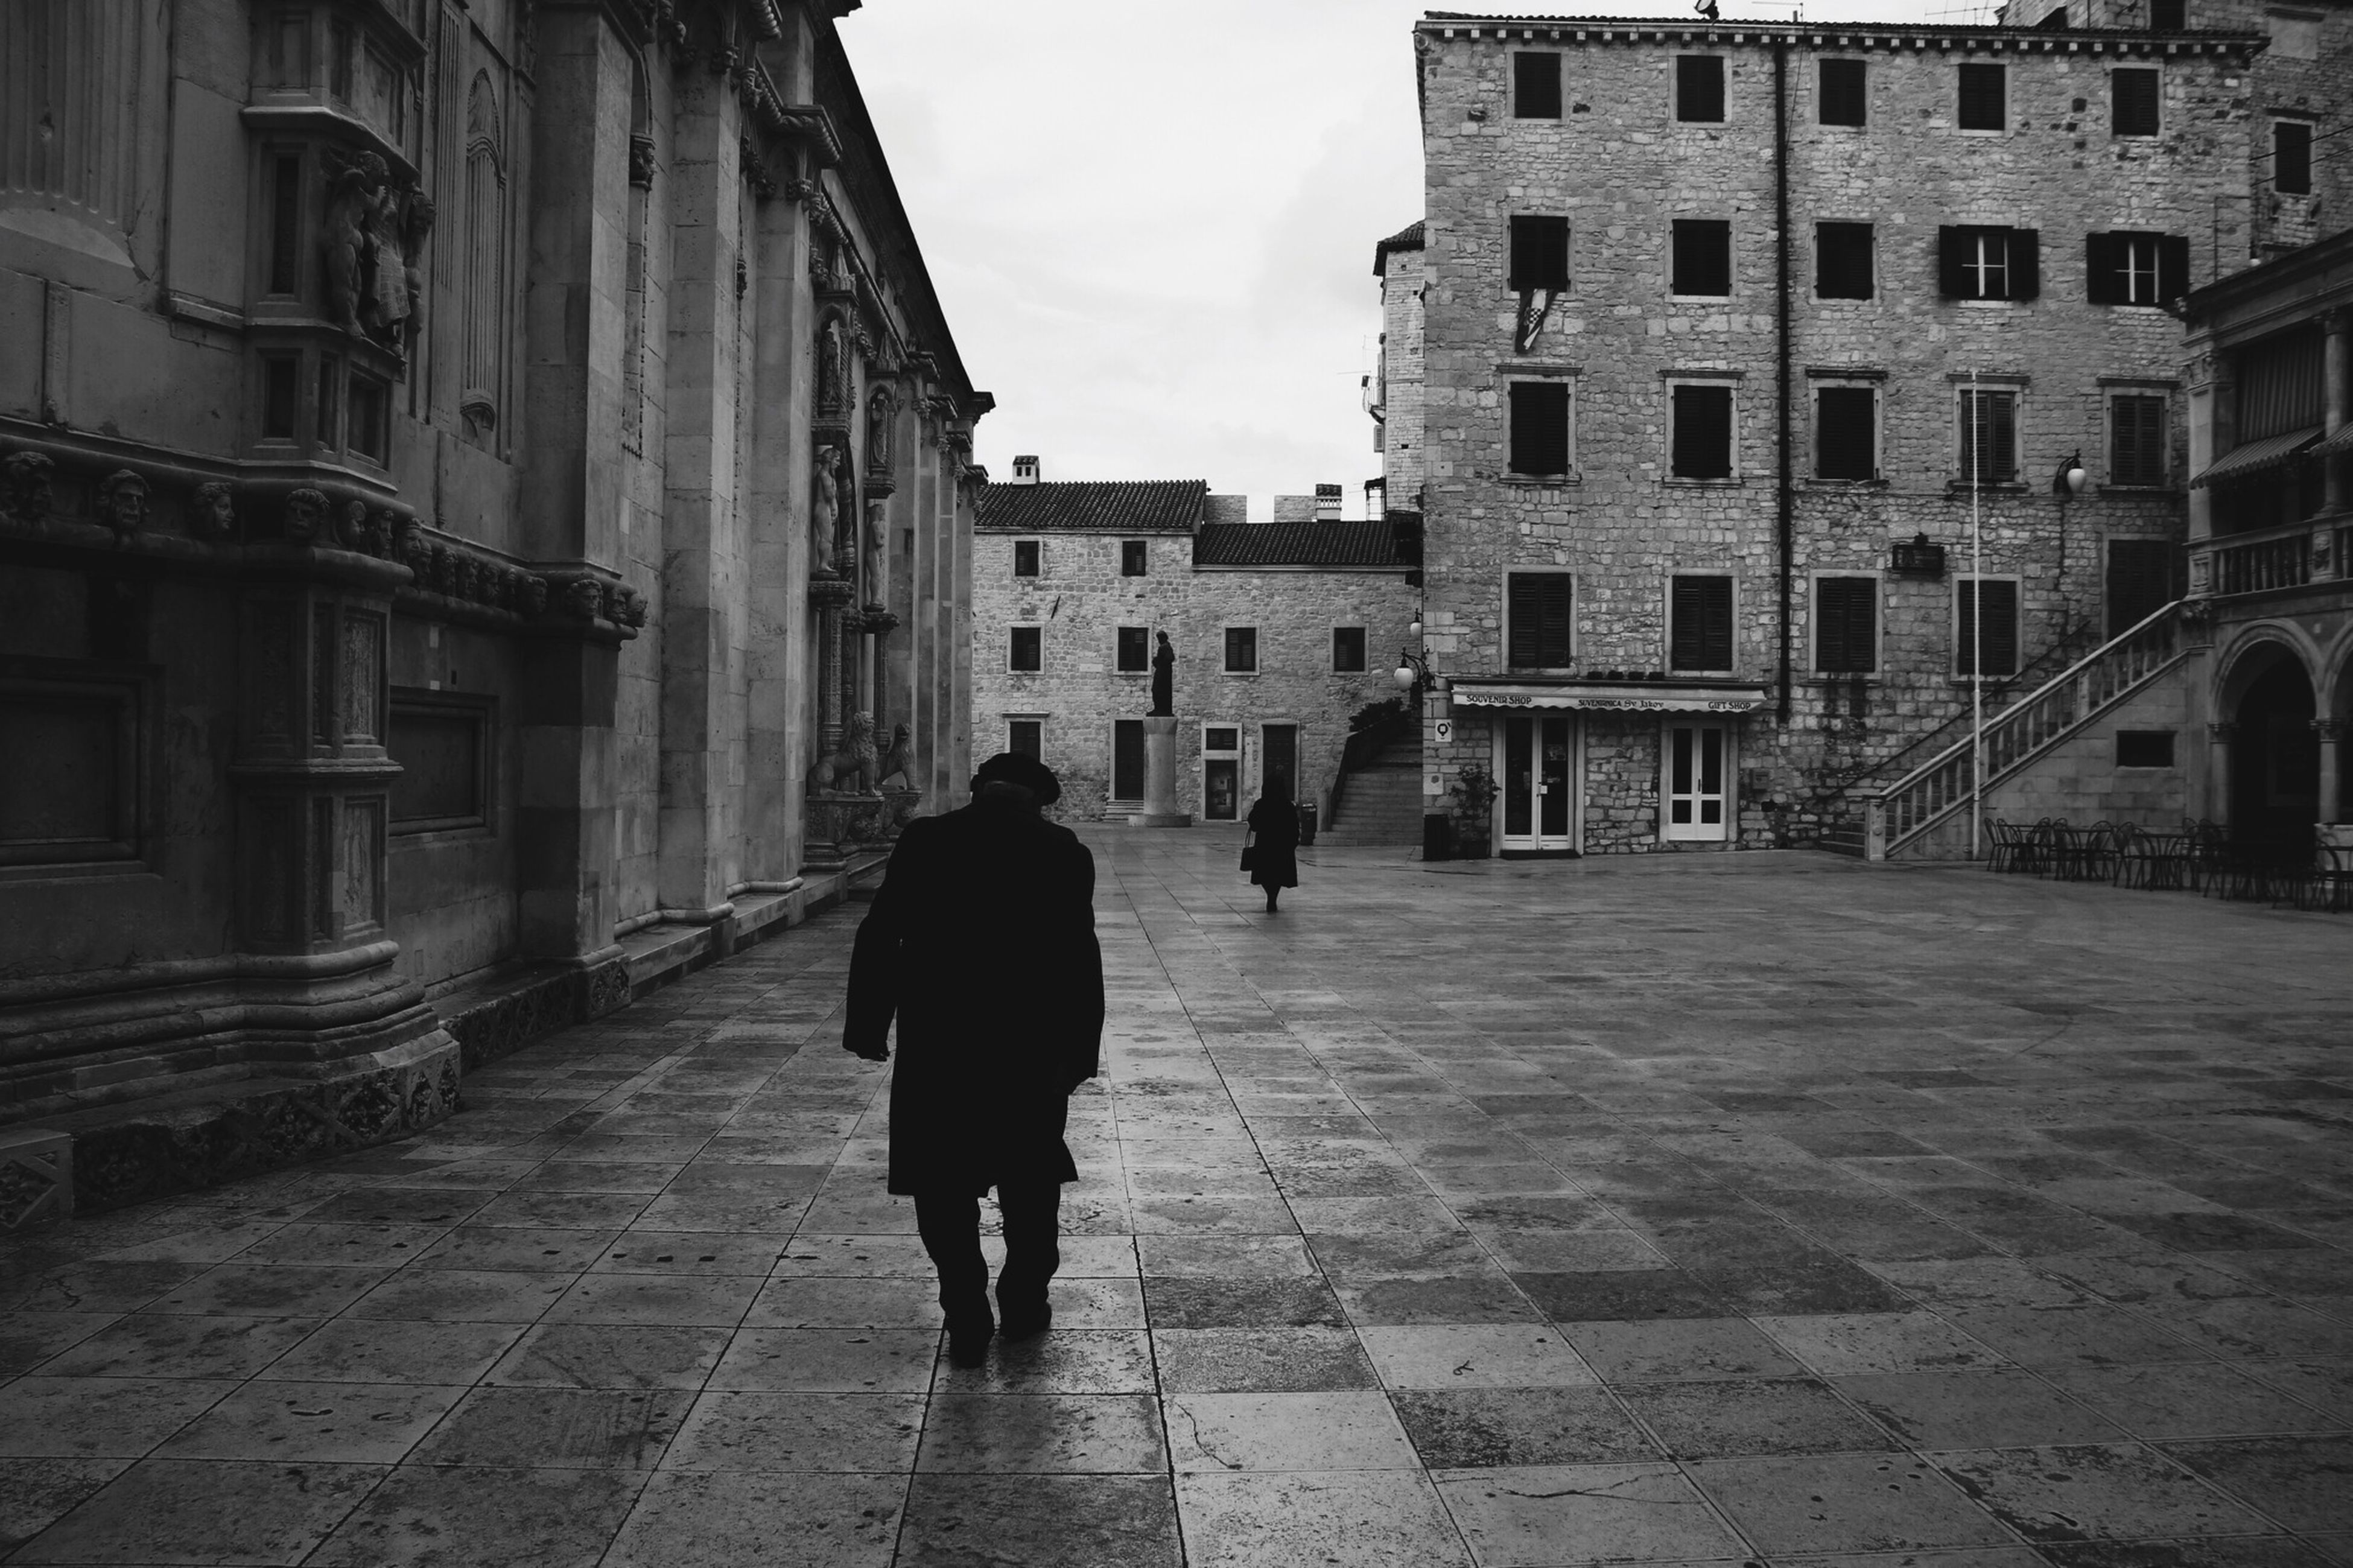 building exterior, architecture, built structure, walking, full length, rear view, street, men, city, lifestyles, the way forward, cobblestone, building, city life, person, residential building, leisure activity, residential structure